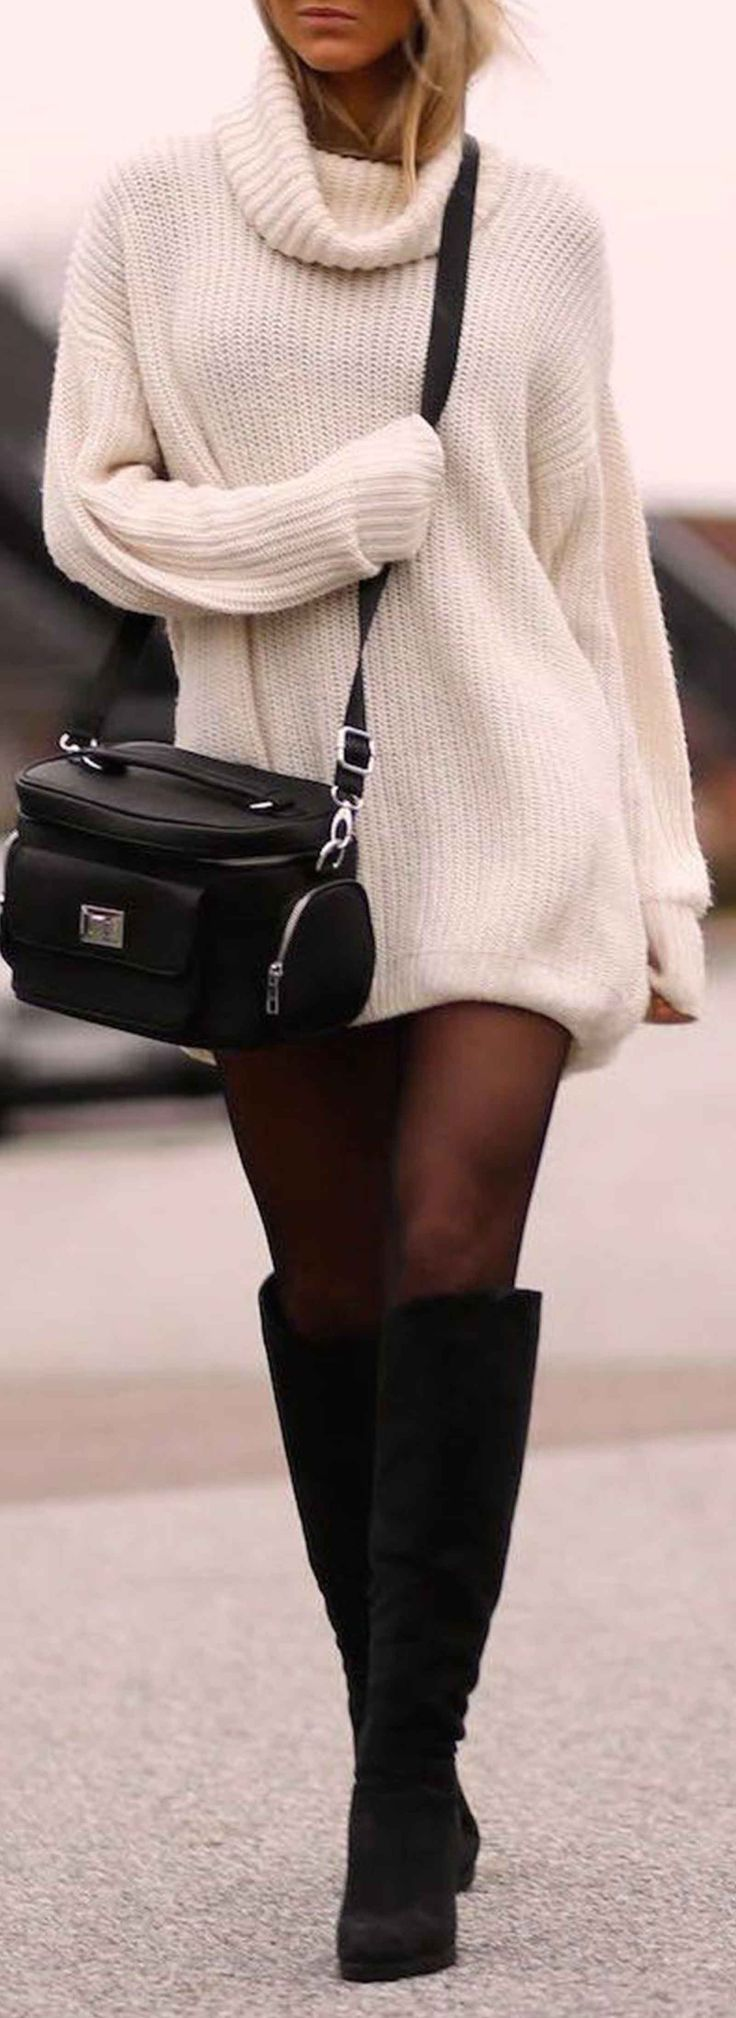 turtleneck sweater dress with black sheer tights and knee-high boots. #fashionista #ootd #blogger